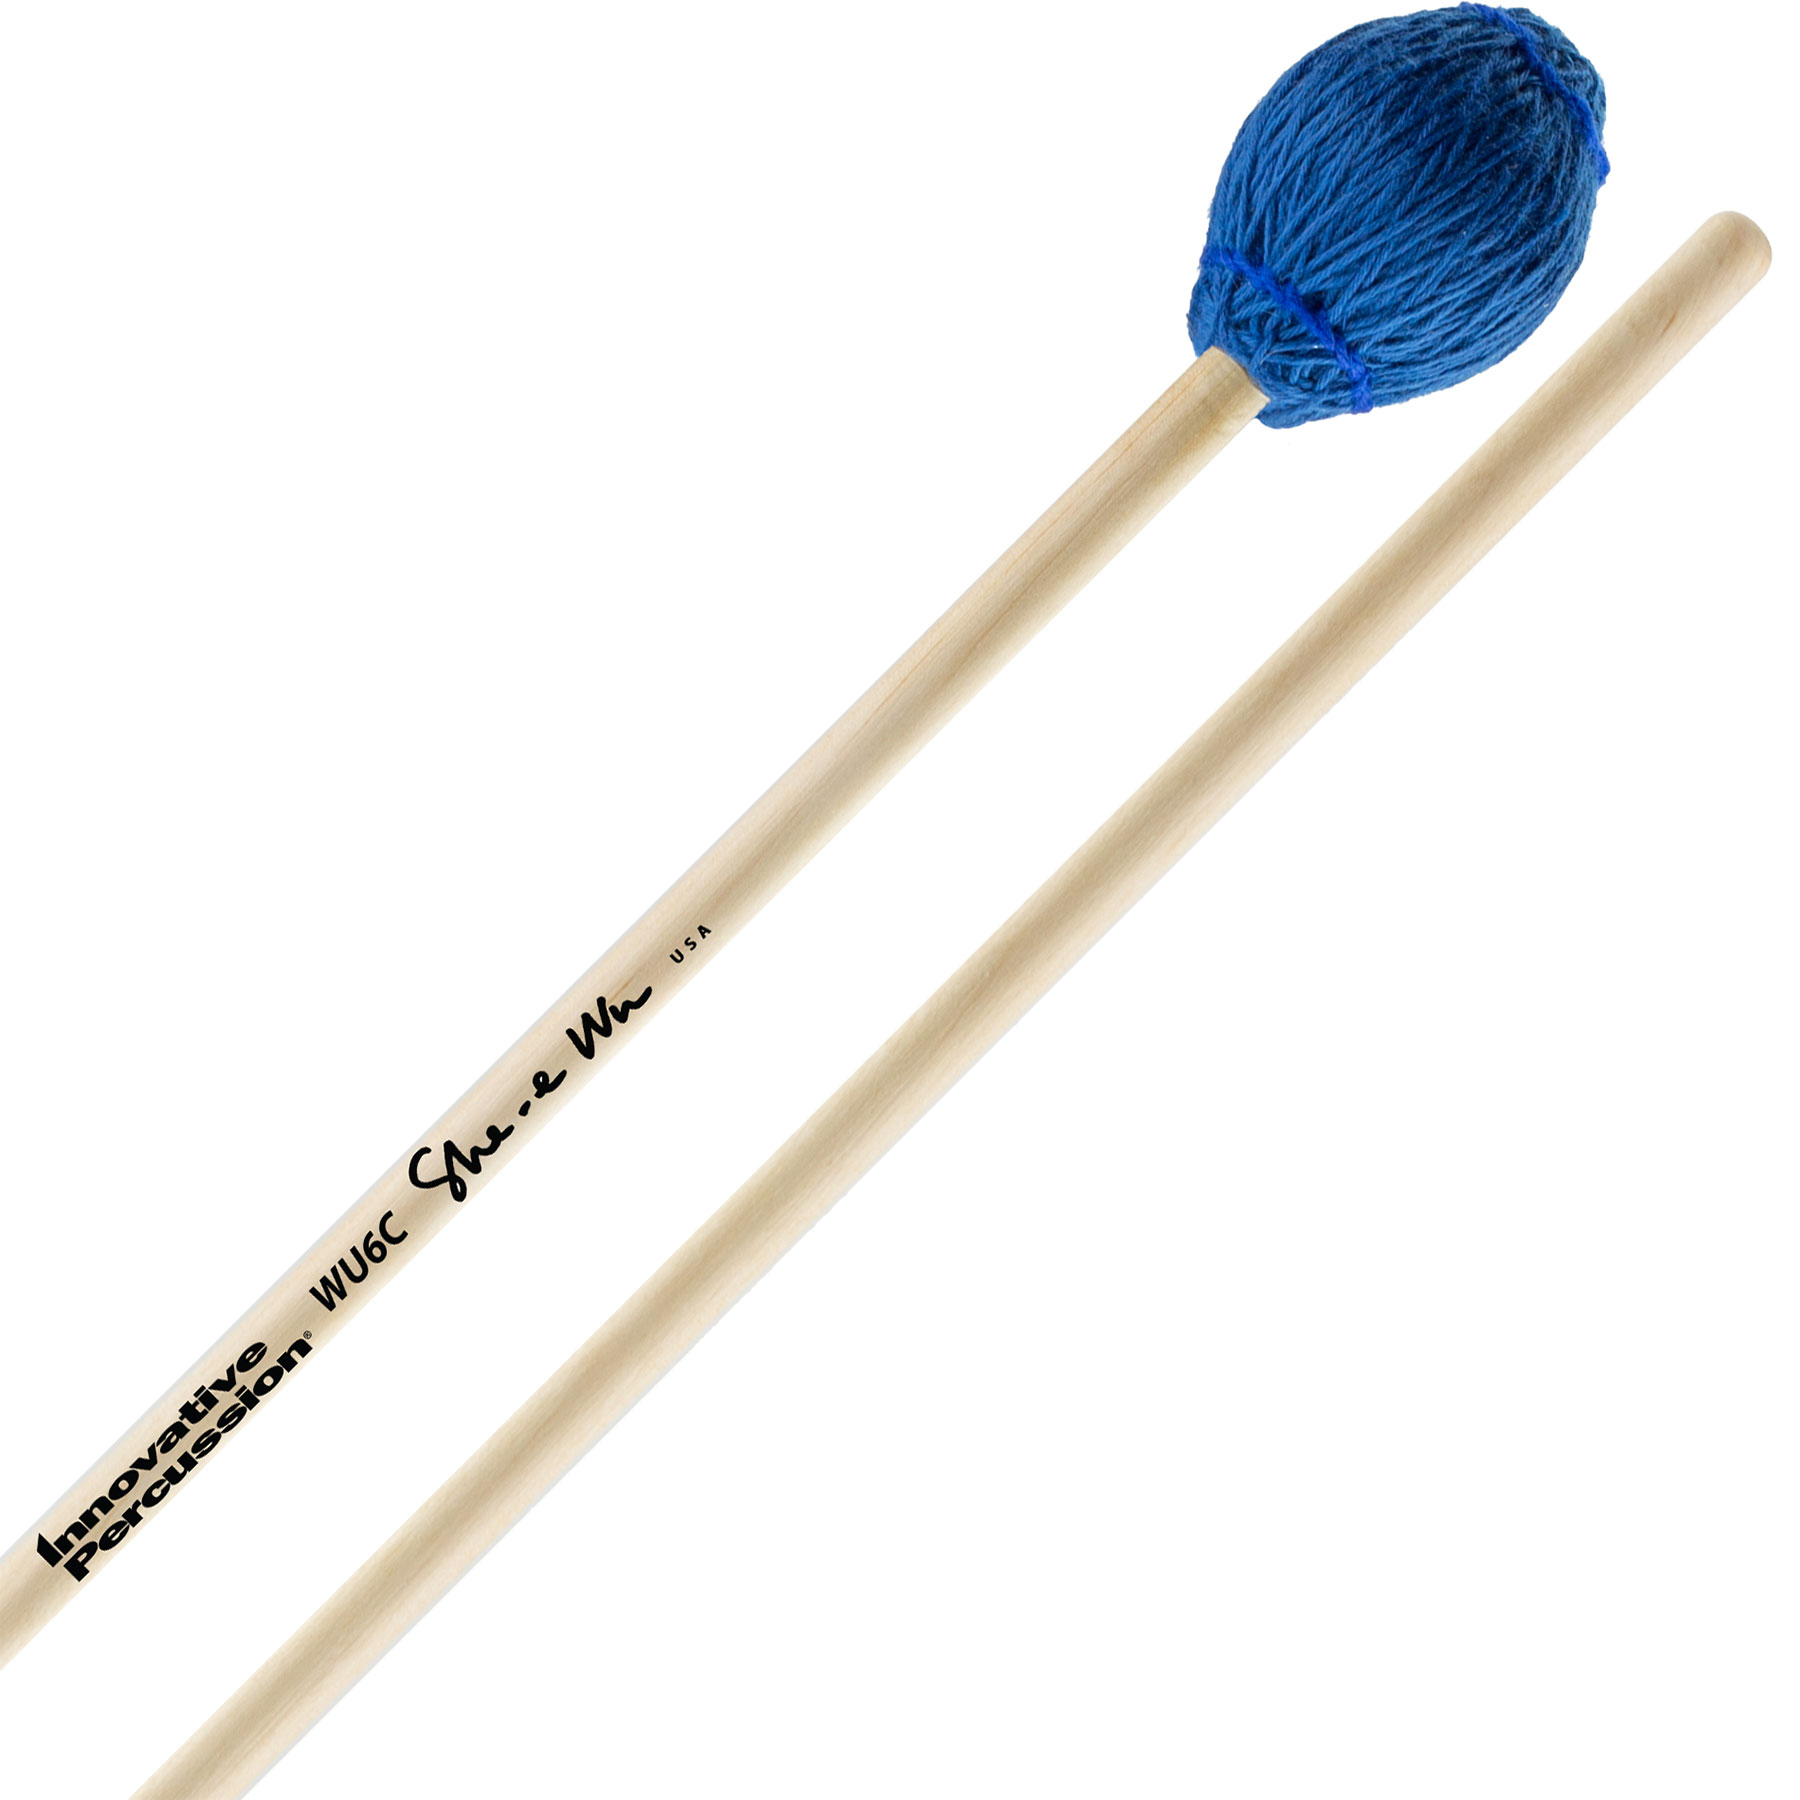 Innovative Percussion She-e Wu Signature Very Hard Concerto Marimba Mallets